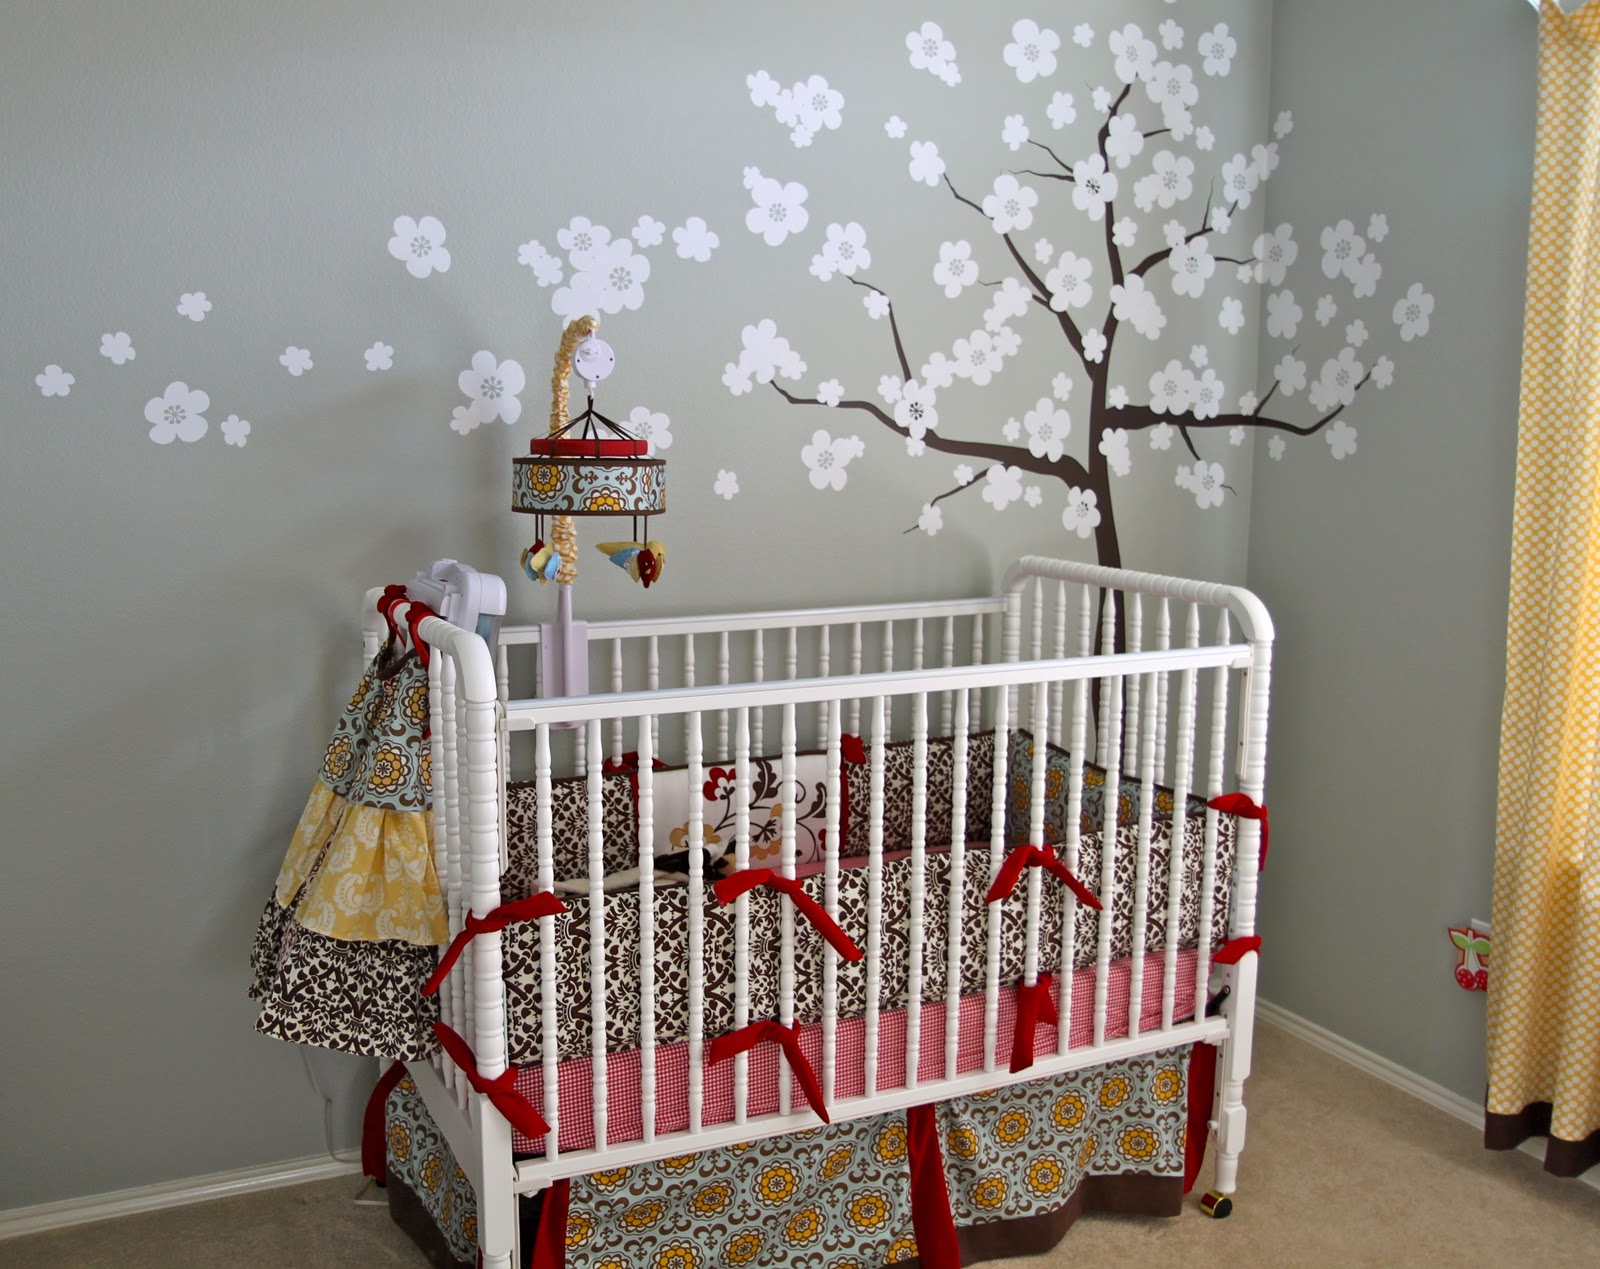 Baby nursery it 39 s quirky and so cute design dazzle for Baby room decoration pictures